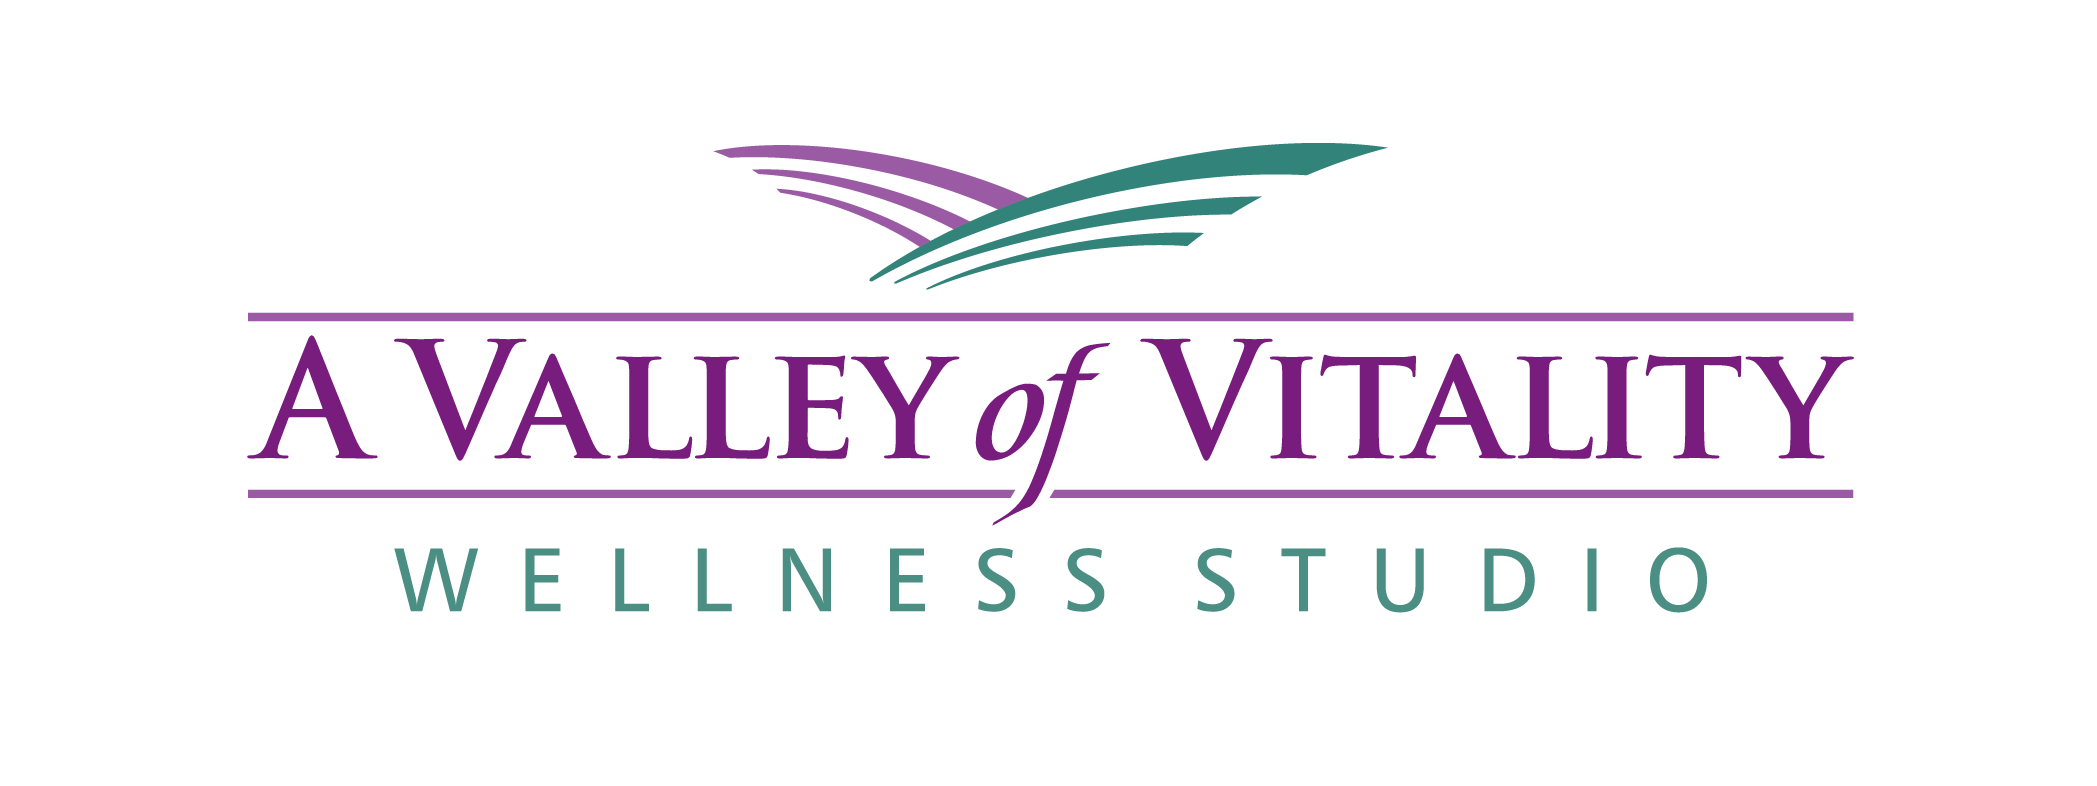 A Valley of Vitality Wellness Studio